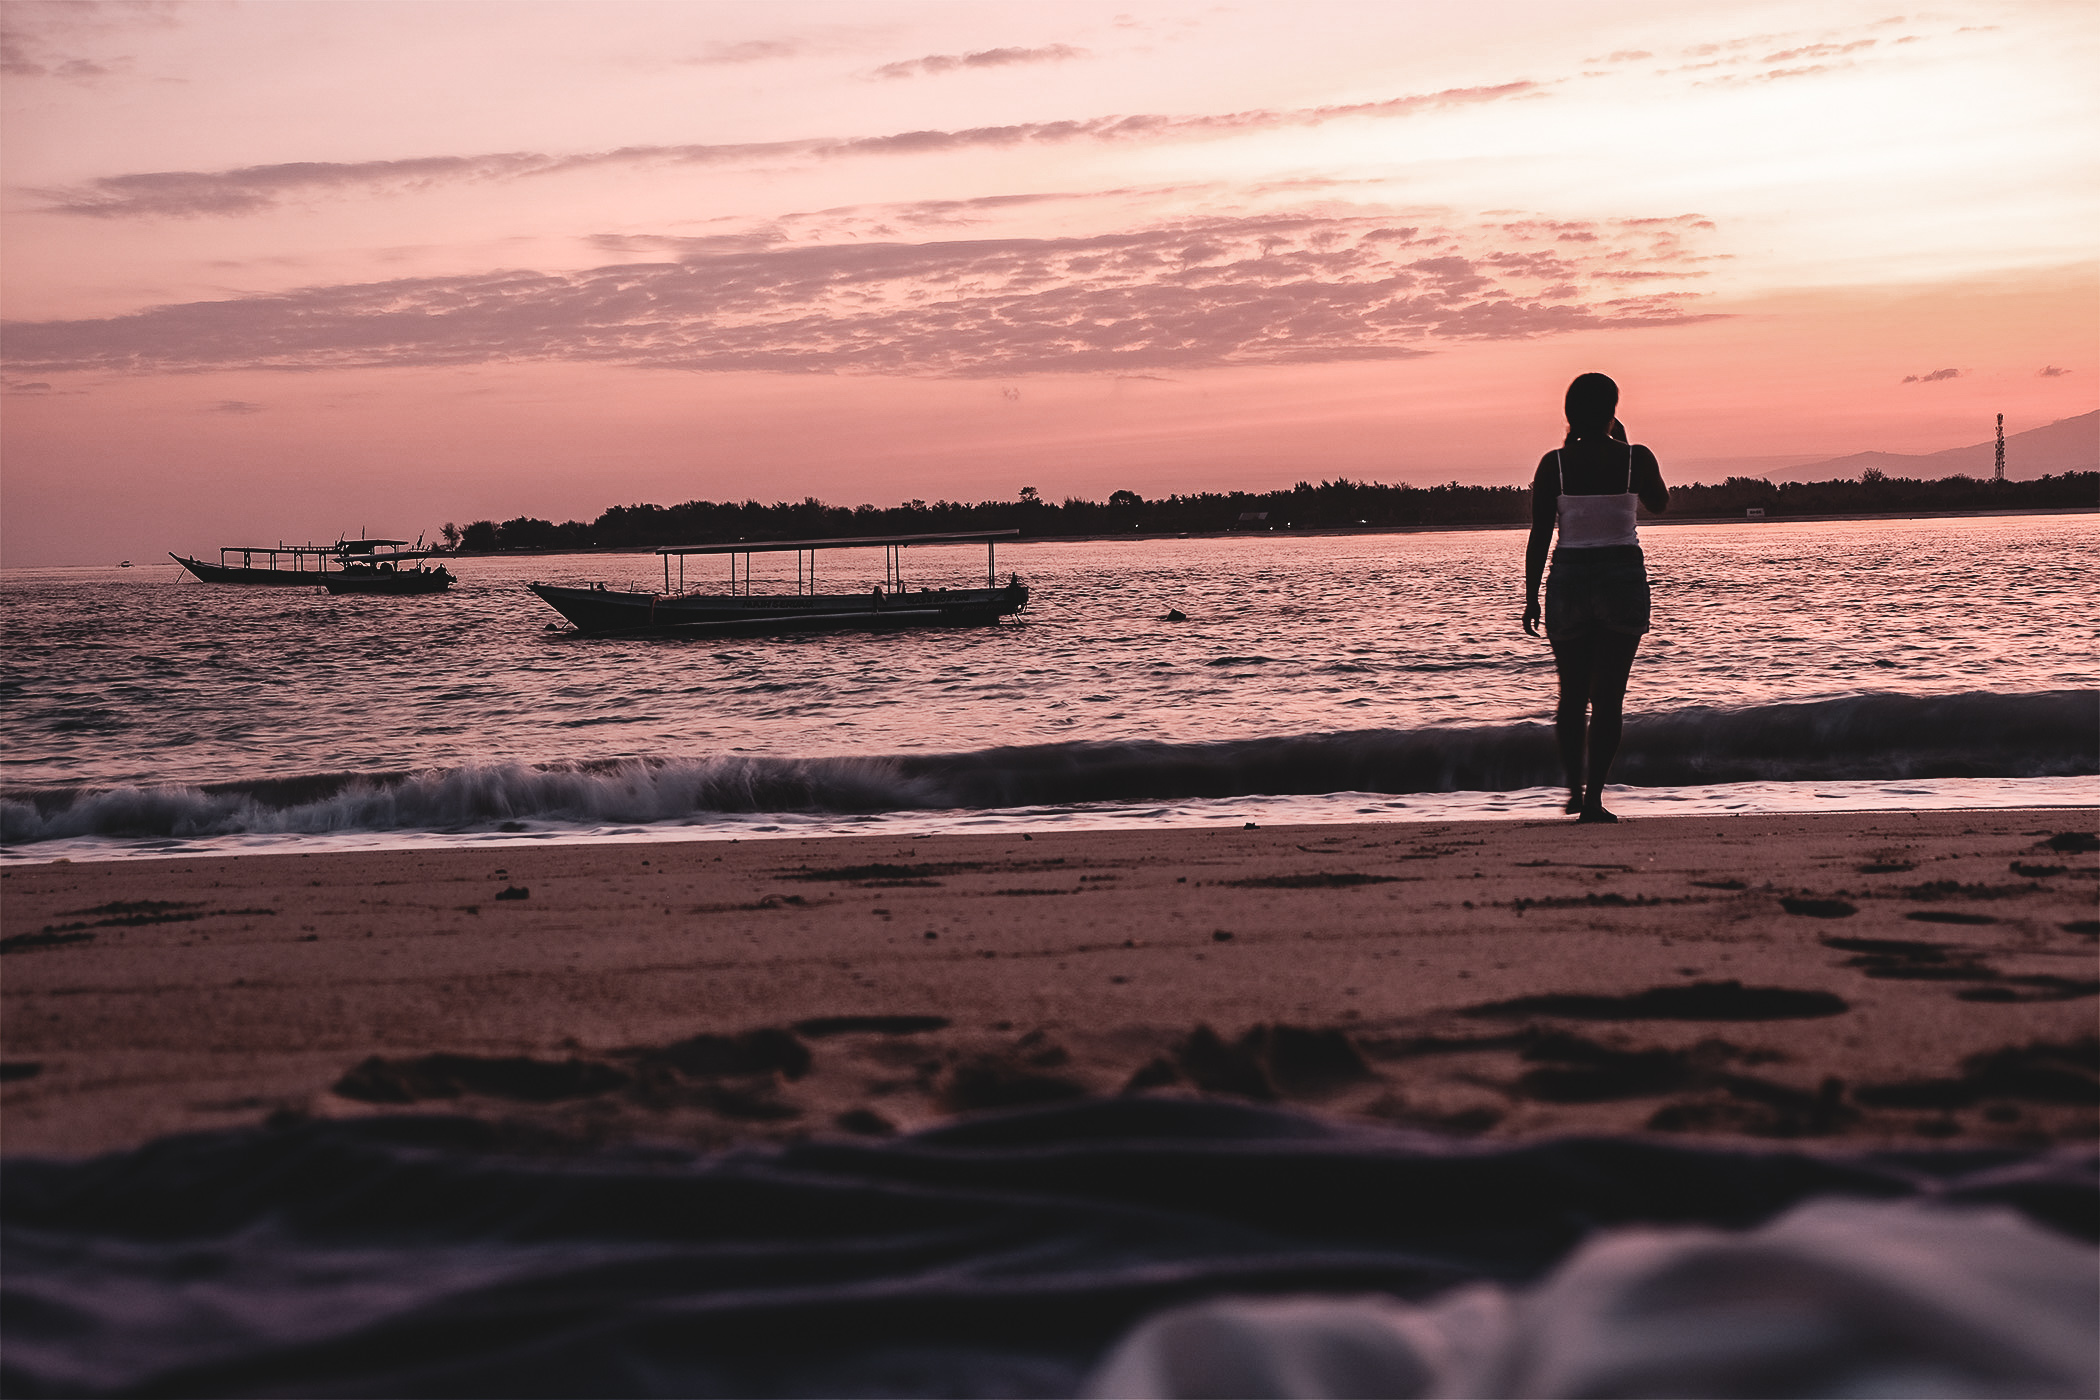 Sunset, beach, pink sky, travel girl, visiting Gili Trawangan, Island Gili from Bali. Best place to stay and enjoy chill and nature. Turtle